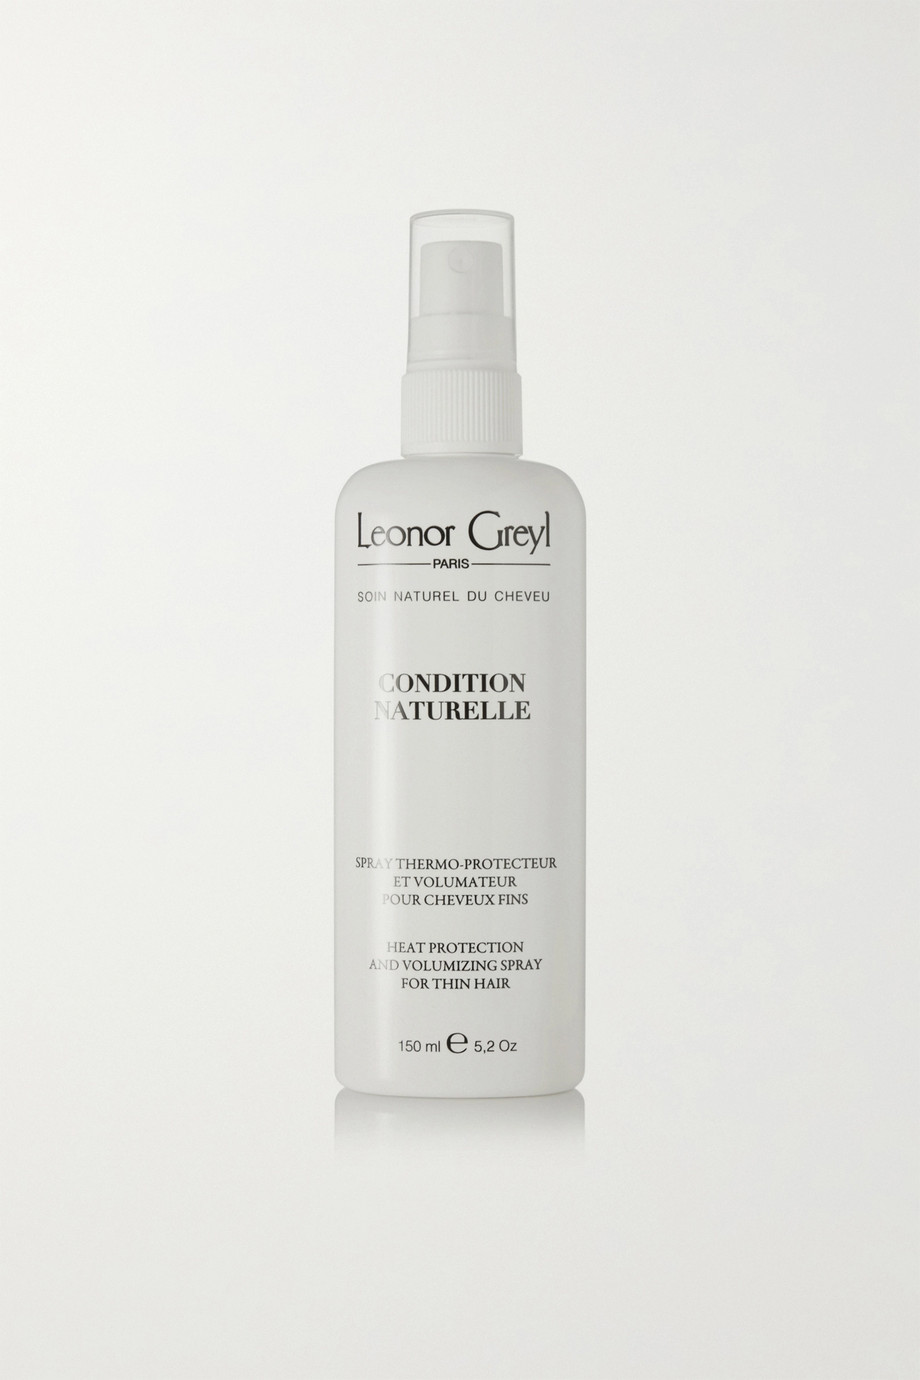 Leonor Greyl Paris Condition Naturelle Heat Protective Styling Spray, 150ml